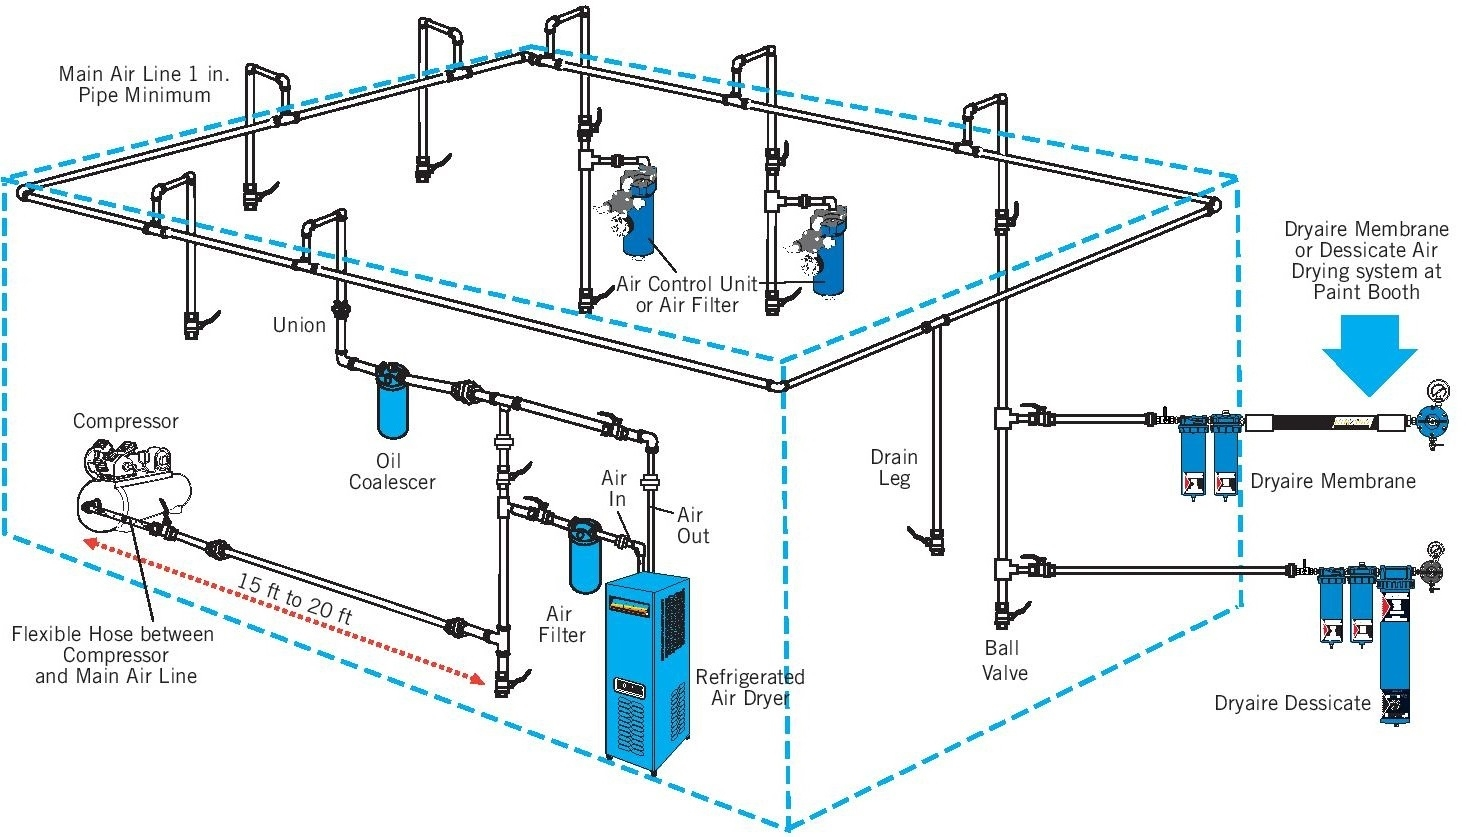 DryAire_piping_layout-page-rotated-90.jpg ... Piping Diagrams ...